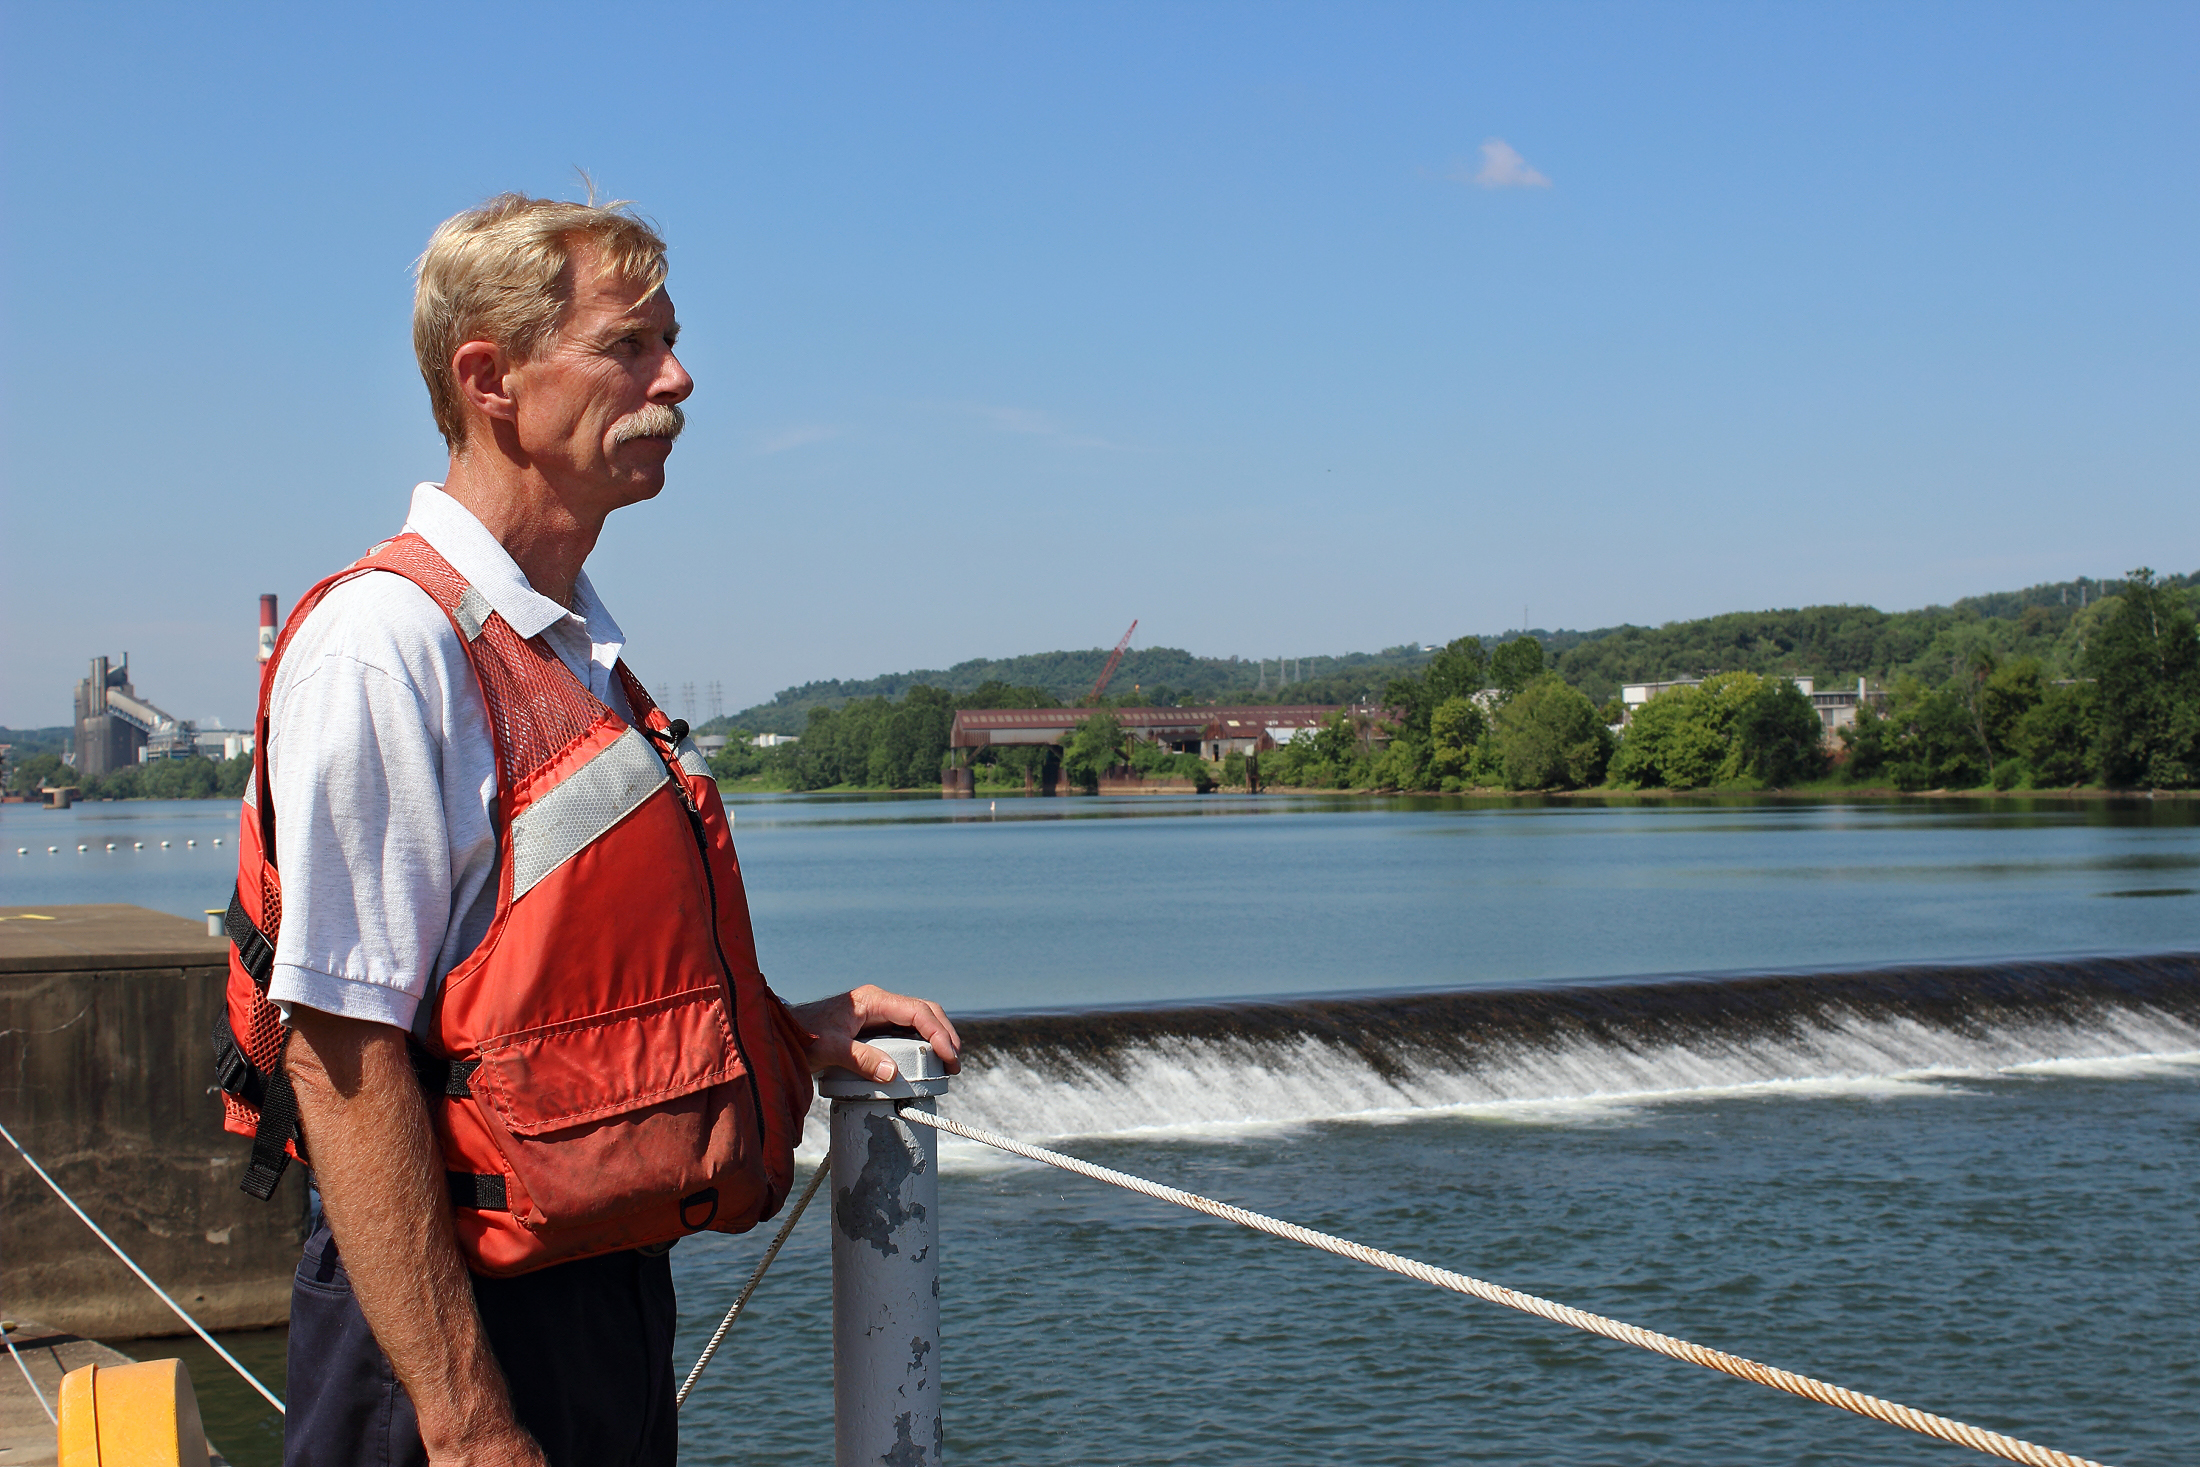 Charles Weight, Lockmaster – Elizabeth Locks and Dam